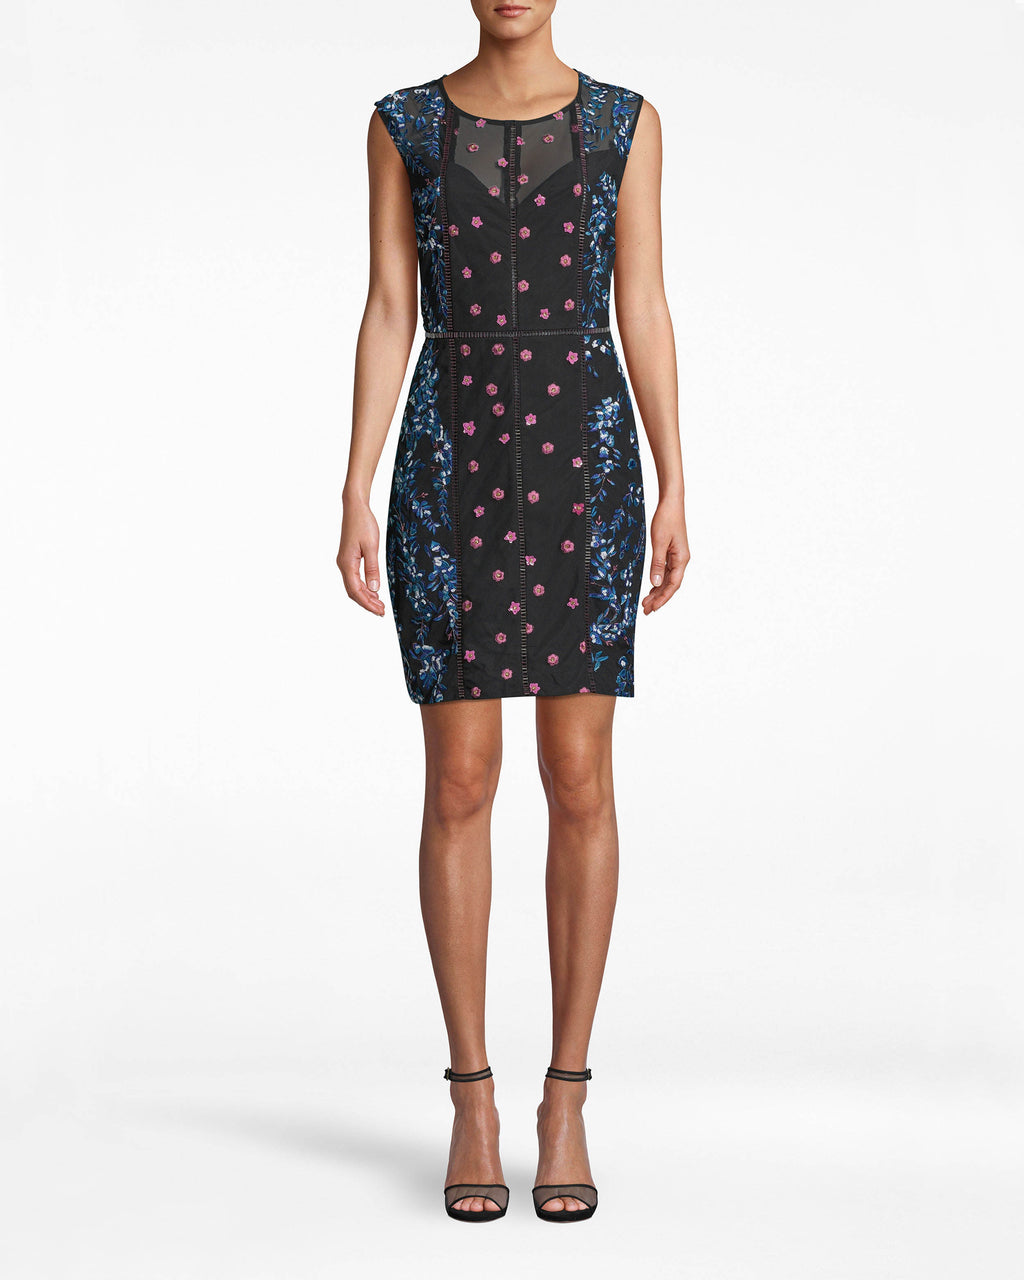 Blossom Embellished Sheath Dress Image 1